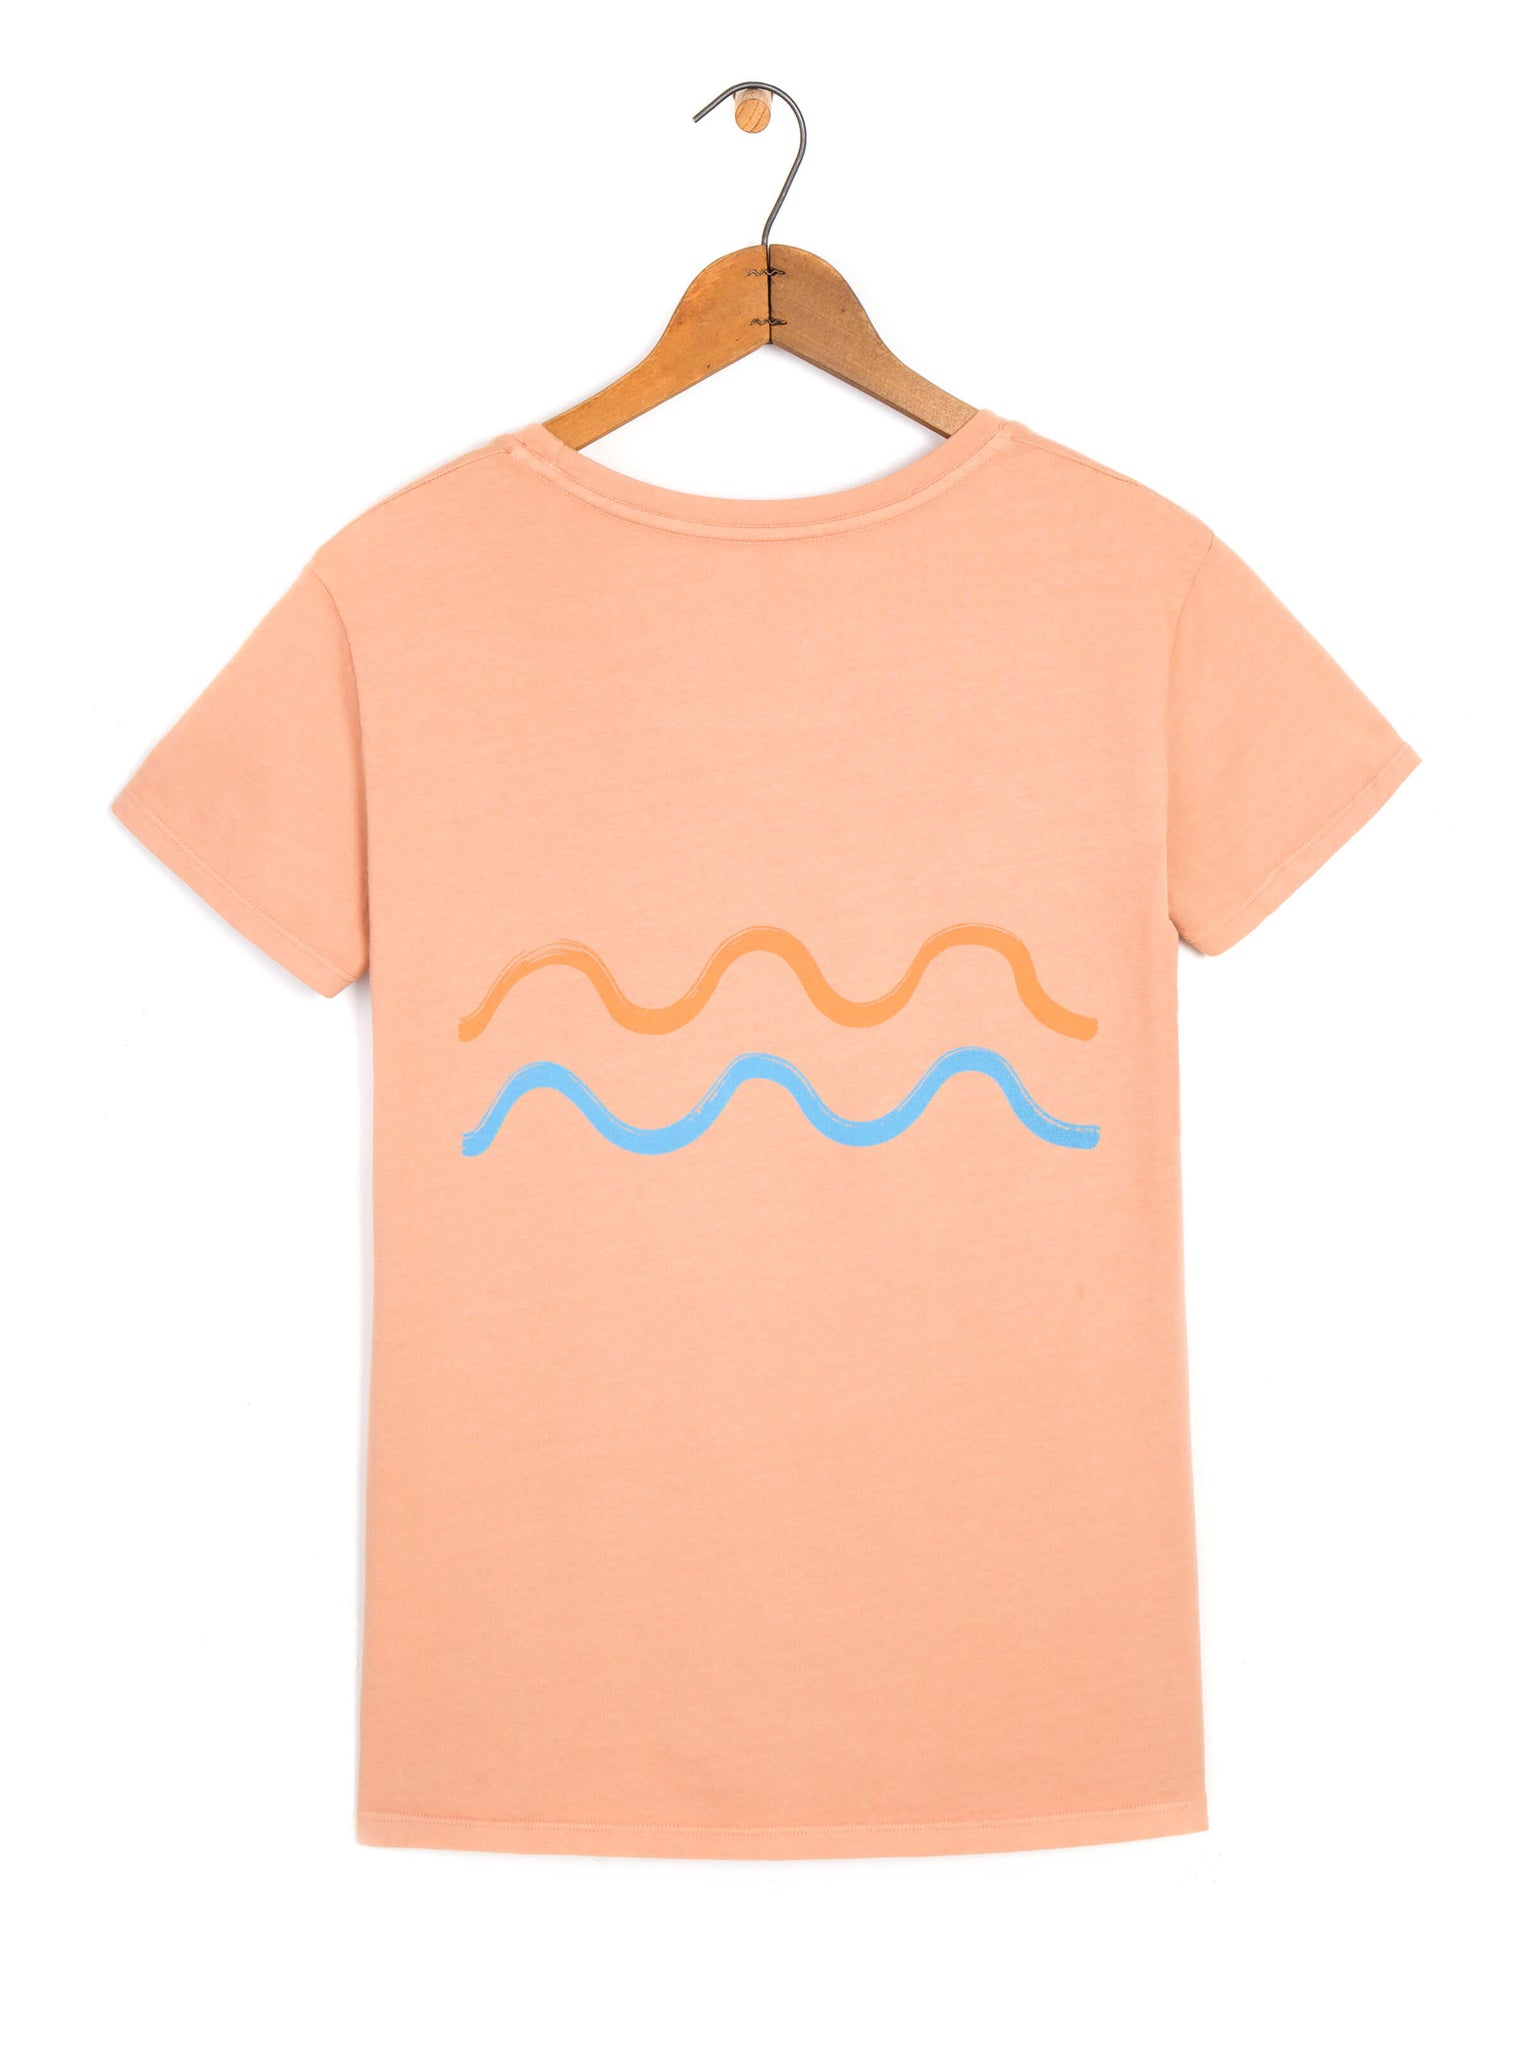 Women's Light Being Tee